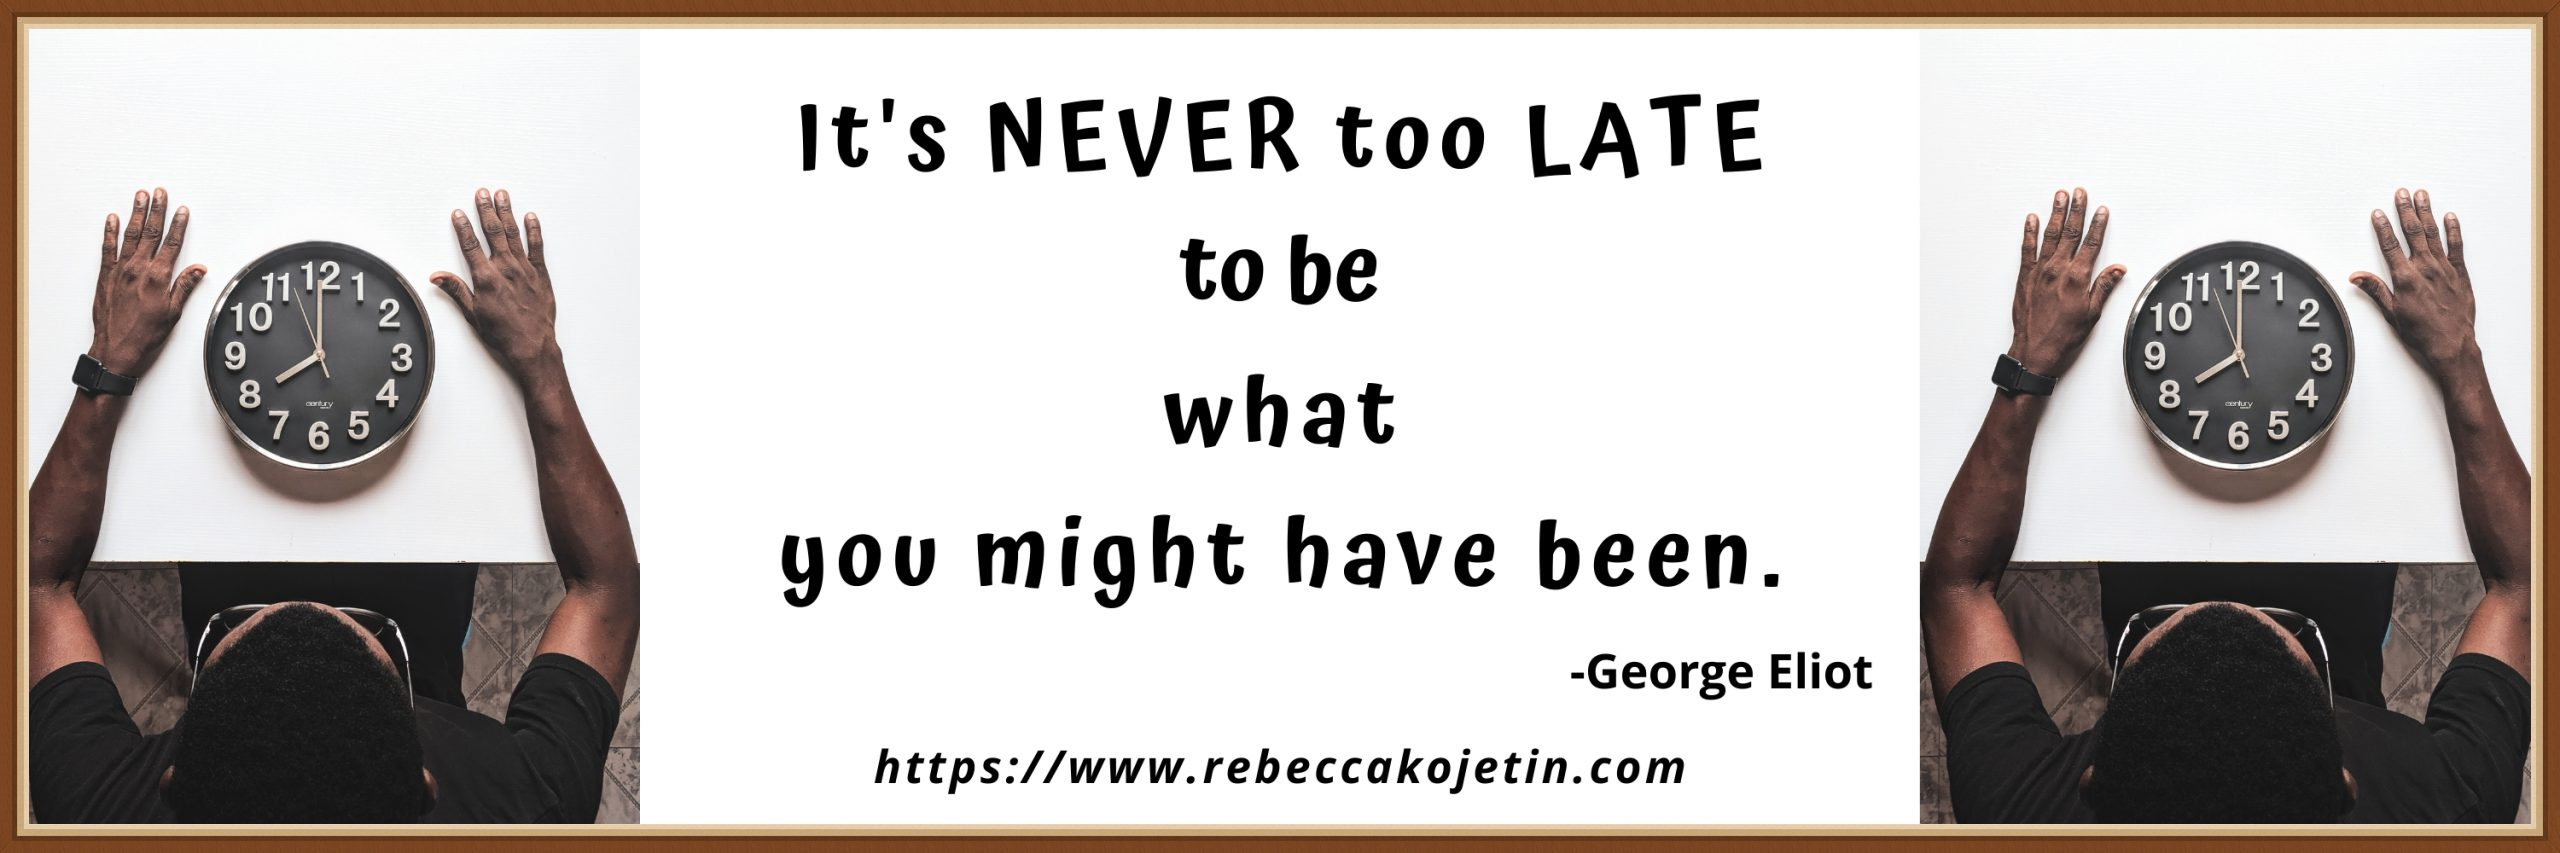 It's never too late to be what you might have become.